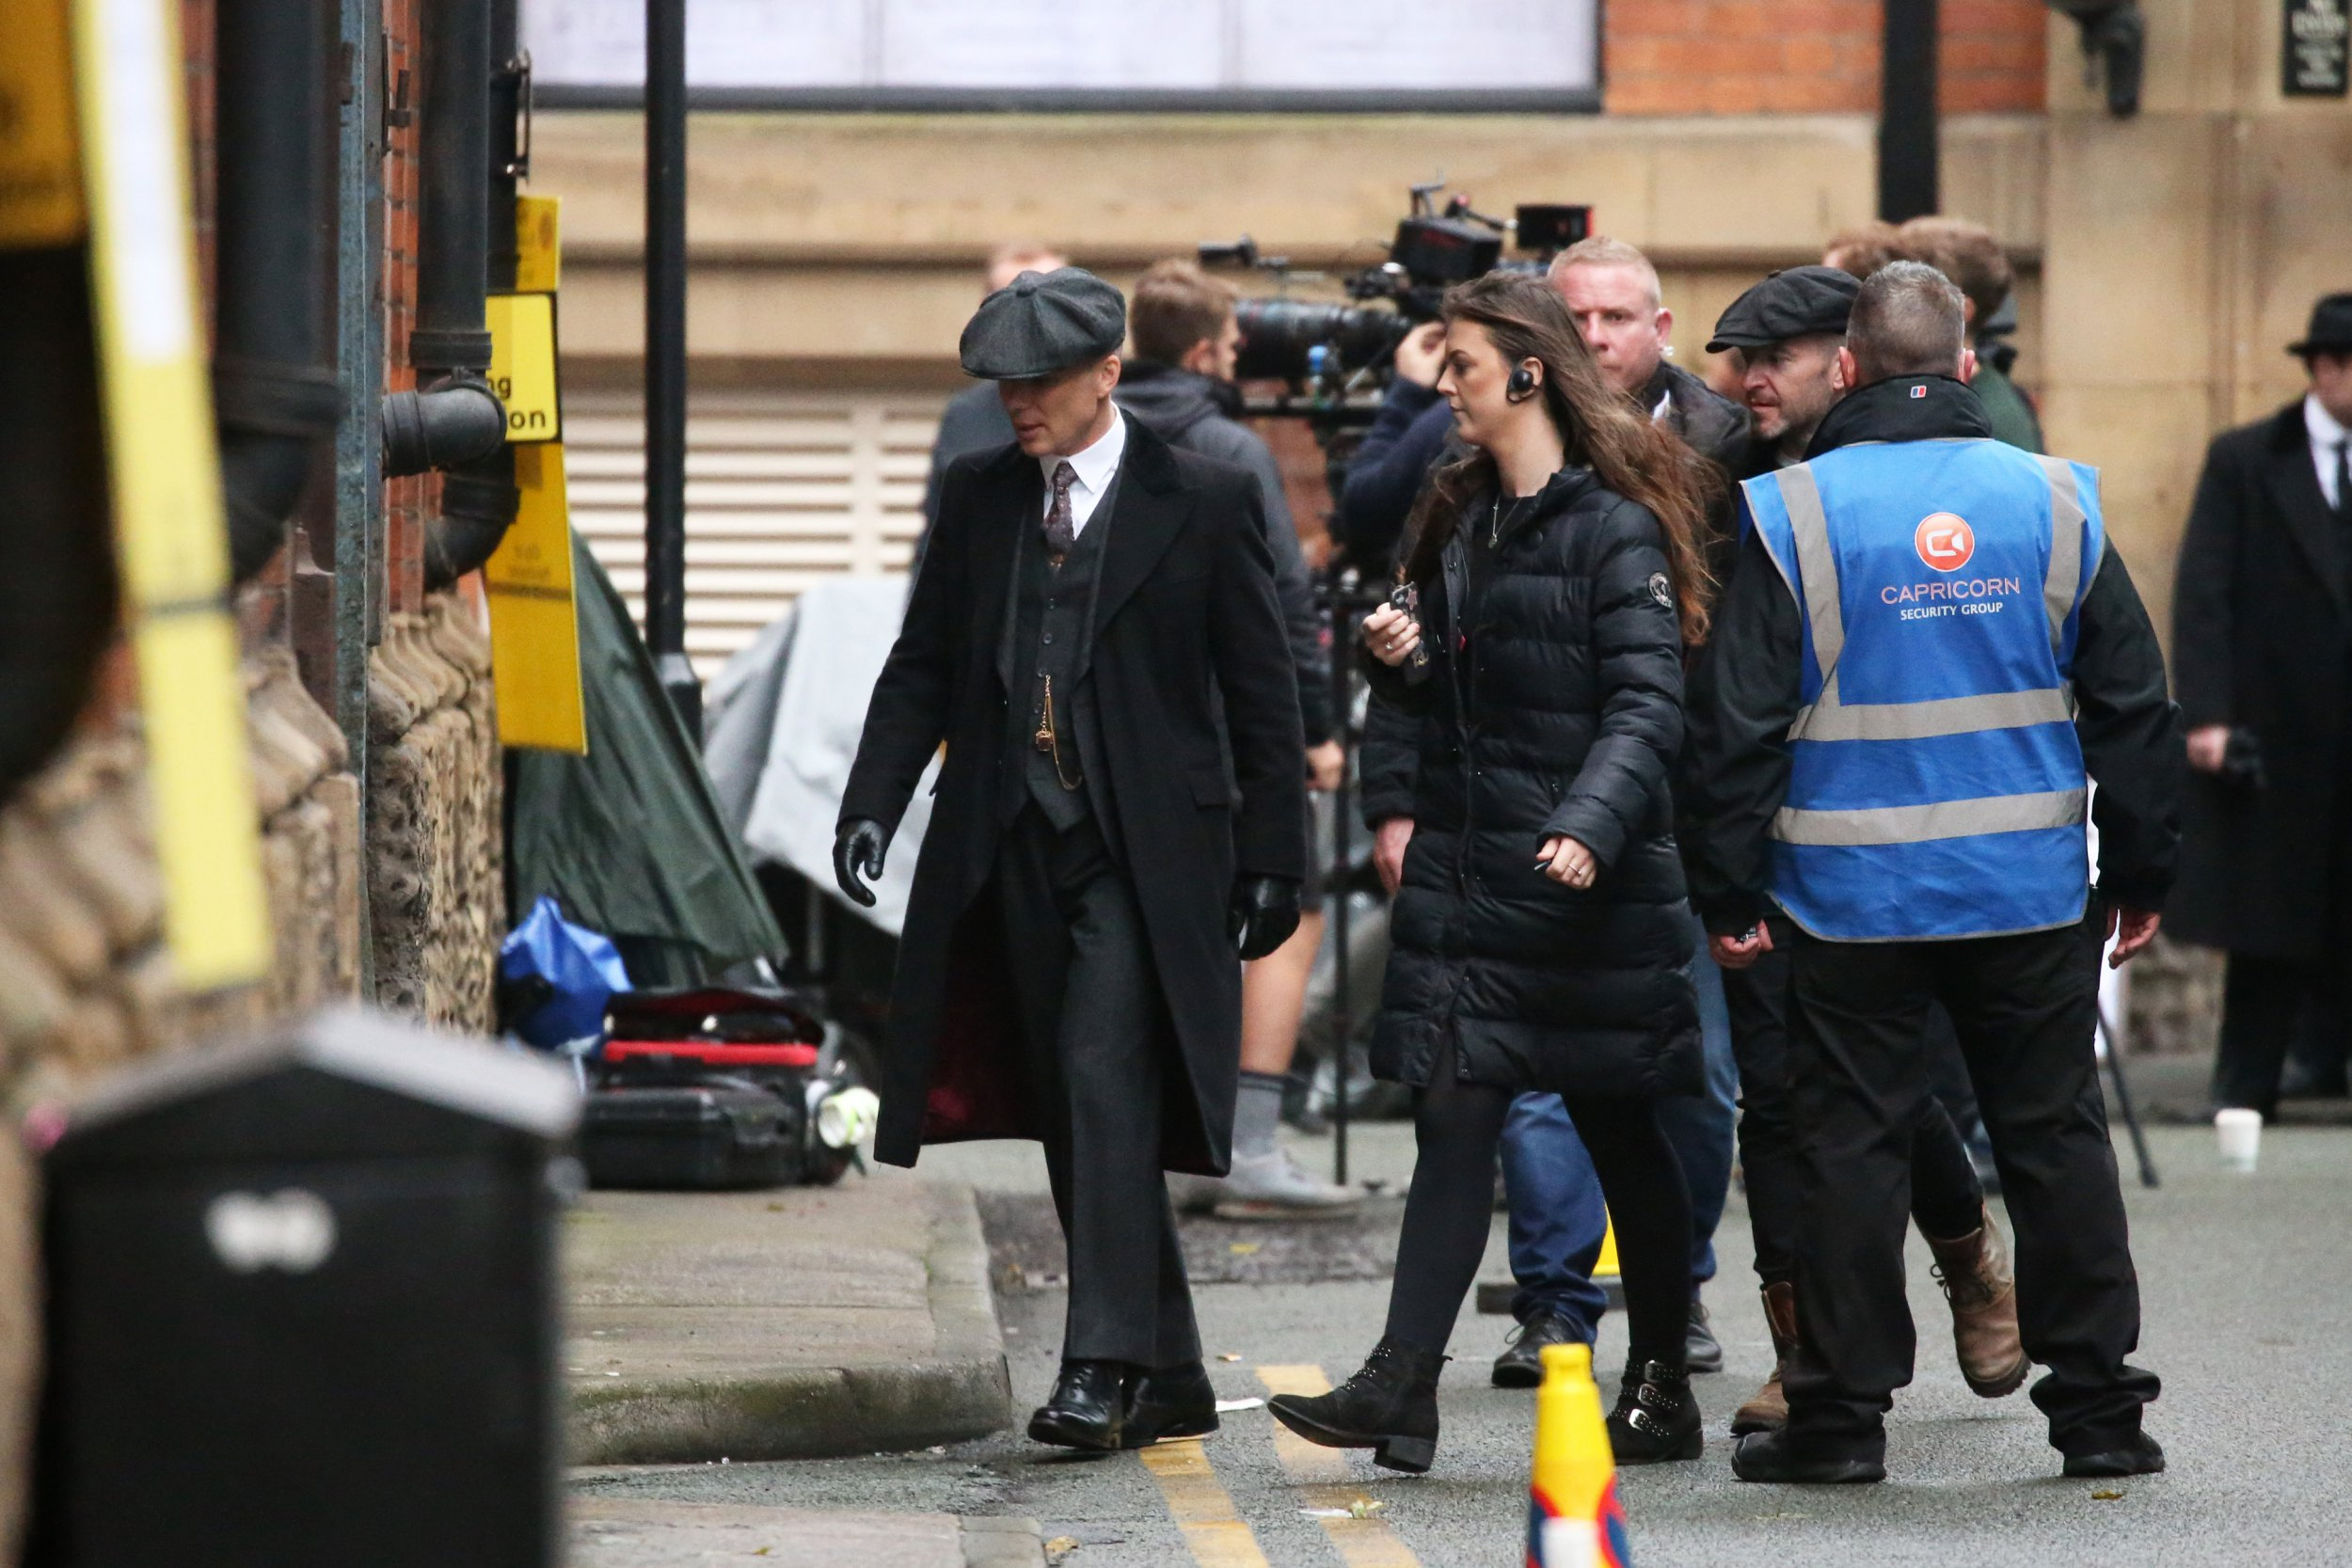 Cillian Murphy Returns As Thomas Shelby On The Set of Peaky Blinders Series 5. Pictured: Ref: SPL5032754 121018 NON-EXCLUSIVE Picture by: SplashNews.com Splash News and Pictures Los Angeles: 310-821-2666 New York: 212-619-2666 London: 0207 644 7656 Milan: +39 02 4399 8577 Sydney: +61 02 9240 7700 photodesk@splashnews.com World Rights,